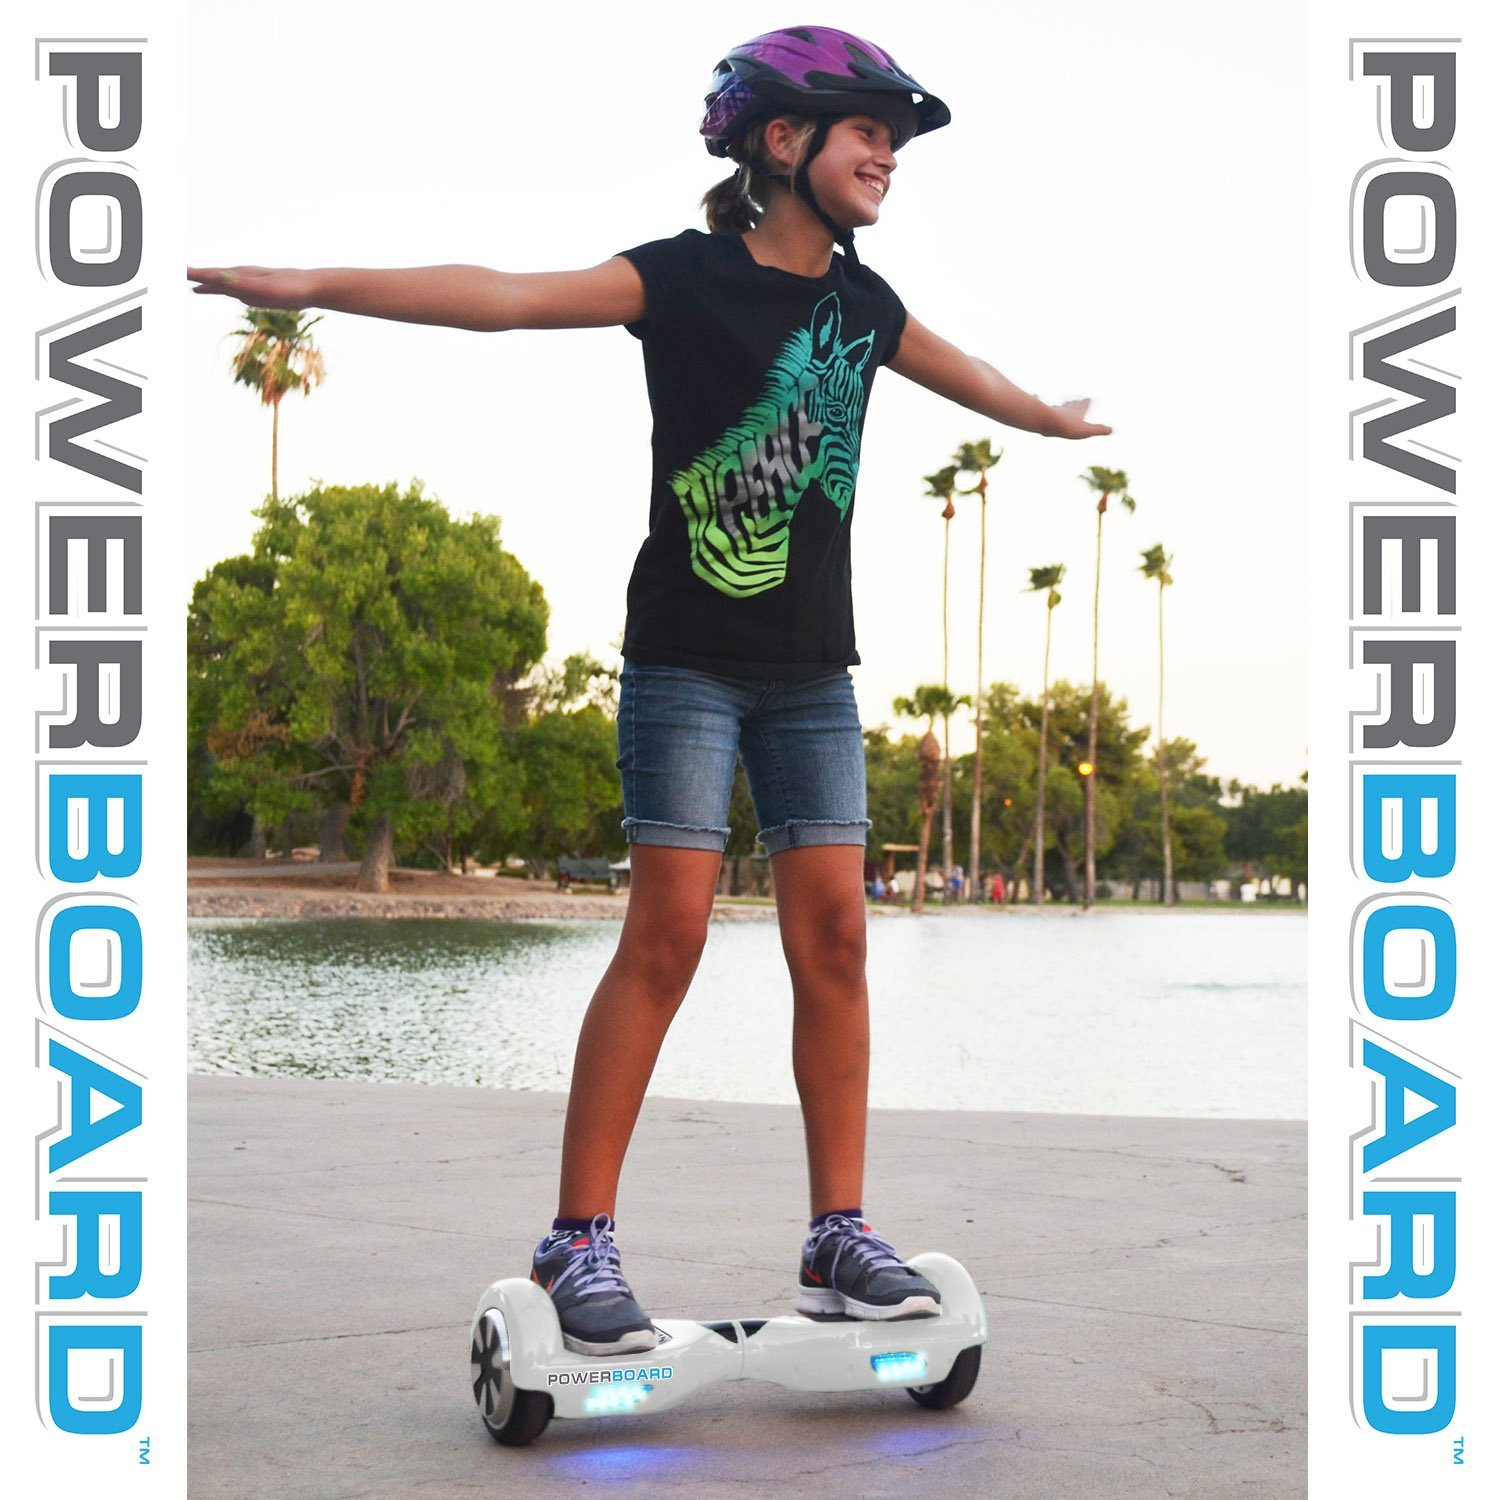 Powerboard-child